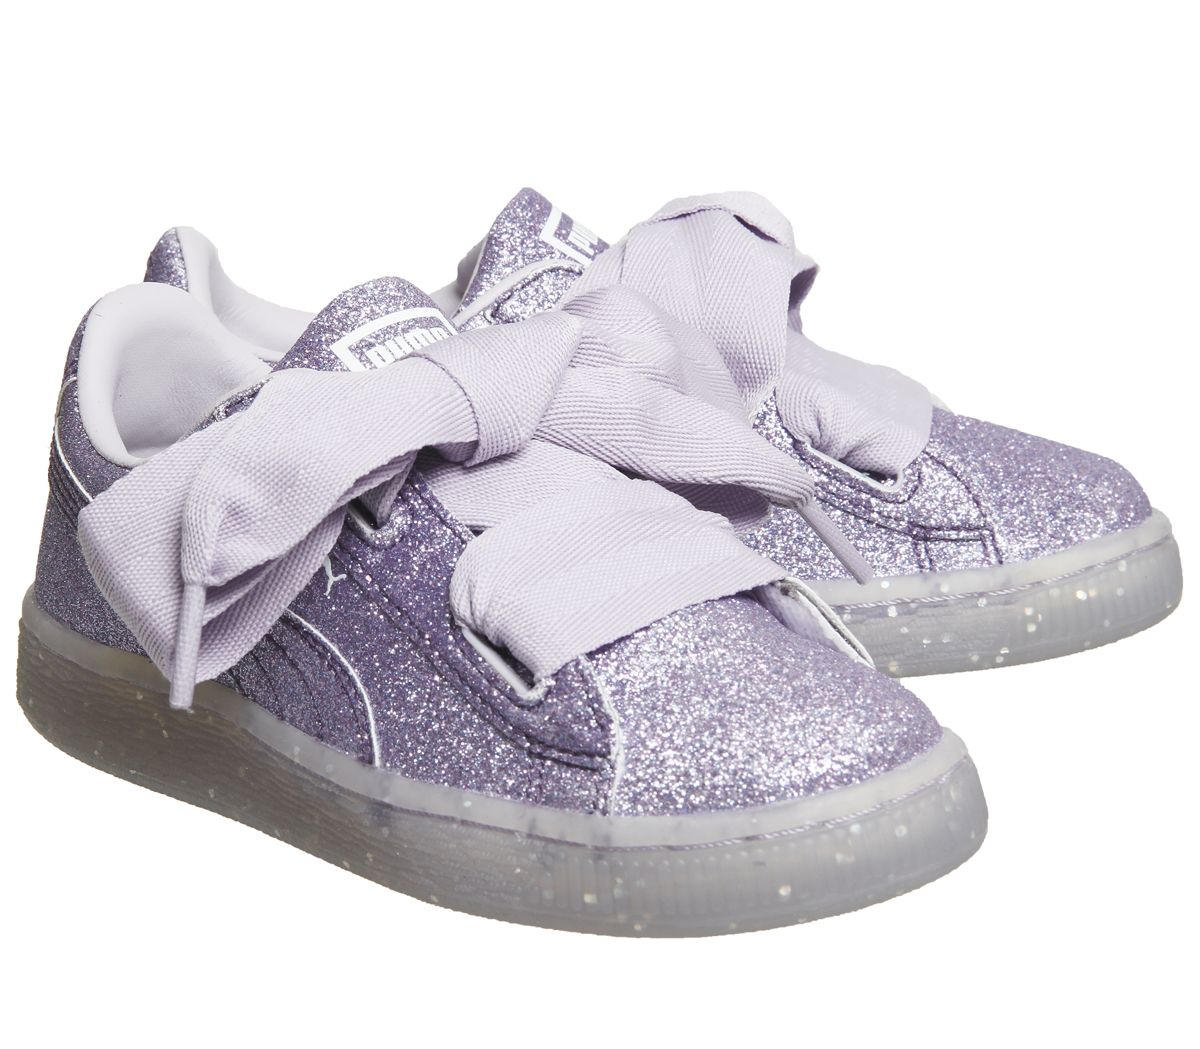 bfd14db40bdf Sentinel Kids Puma Basket Heart Ps Thistle Glitter Exclusive Kids